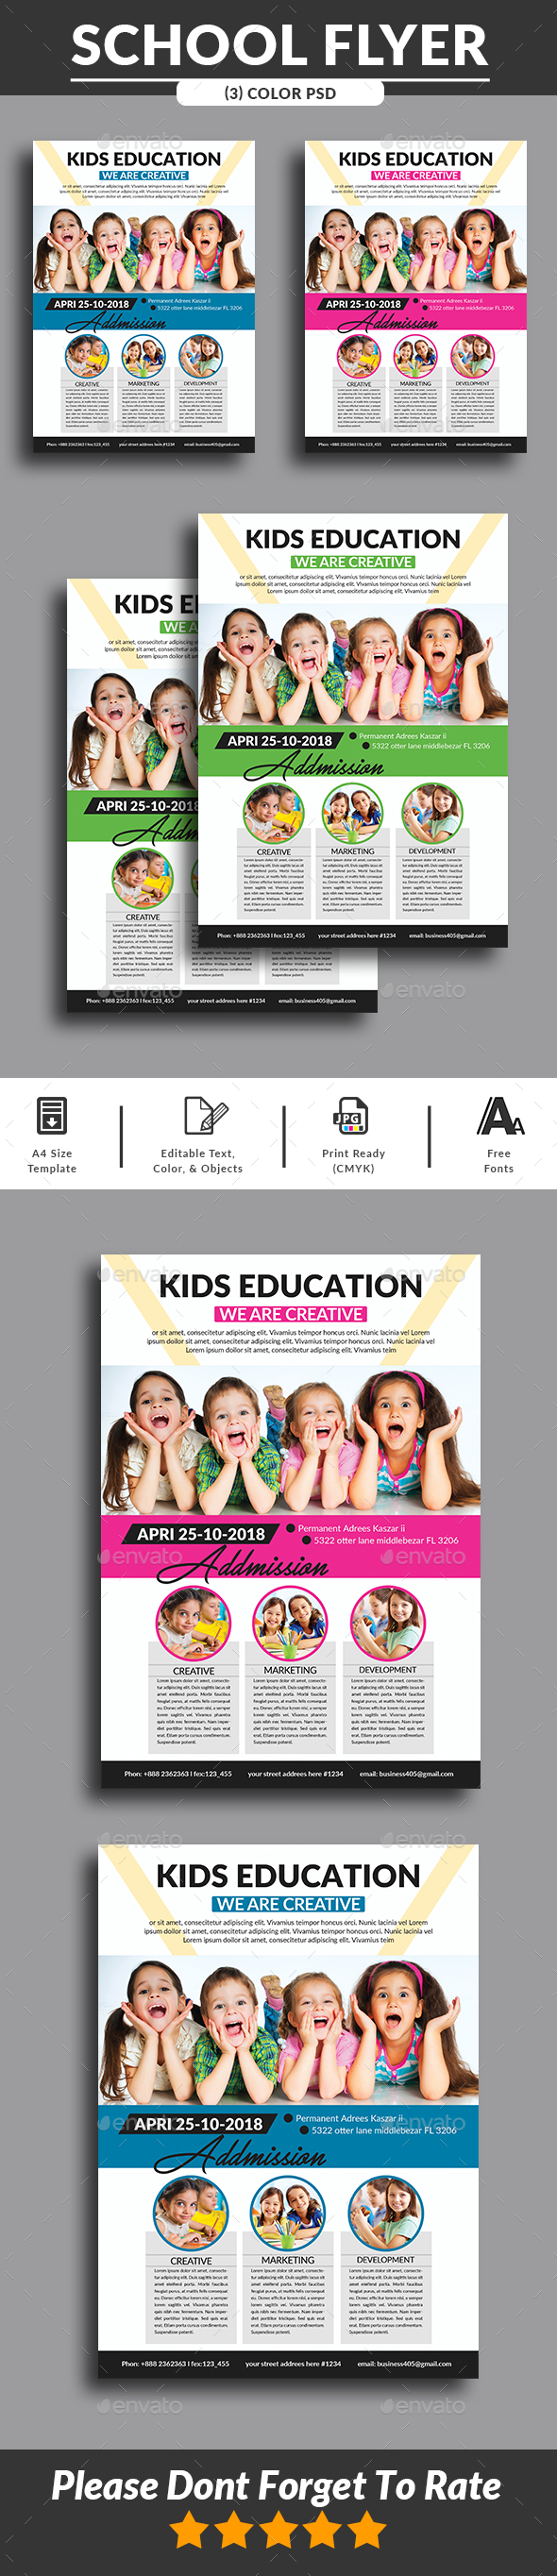 School Flyer Print Templates - Corporate Flyers